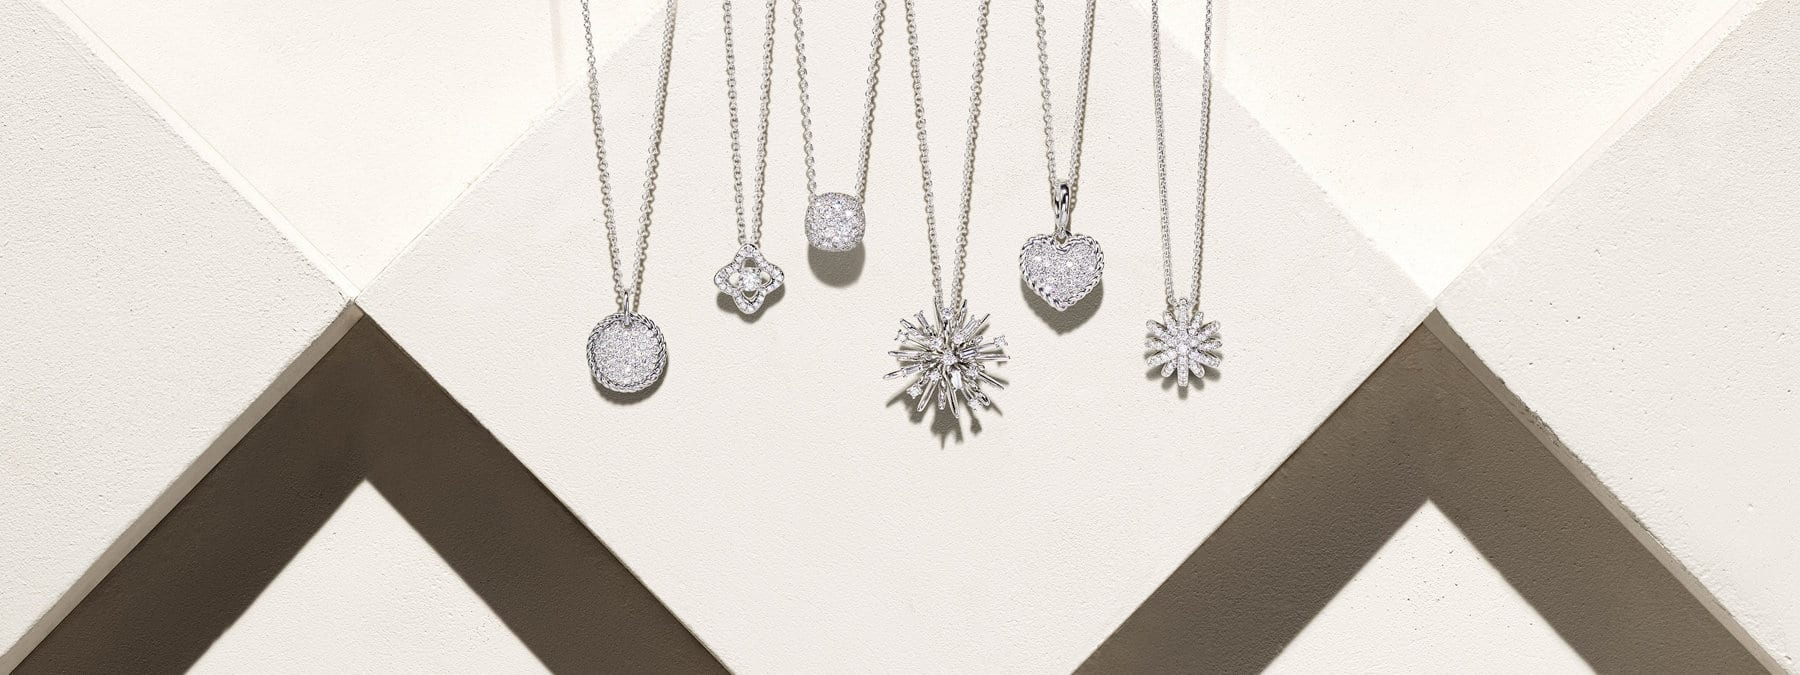 A color photo shows six David Yurman pendant necklaces for women from the Cable Collectibles, Venetian Quatrefoil, Châtelaine, Albion, Supernova and Starburst collections hanging in front of a beige-hued stone backdrop with hard diagonal shadows. The necklaces are crafted from 18K white gold with white diamond-encrusted circular, quatrefoil-, cushion-, heart- or star-shaped pendants.